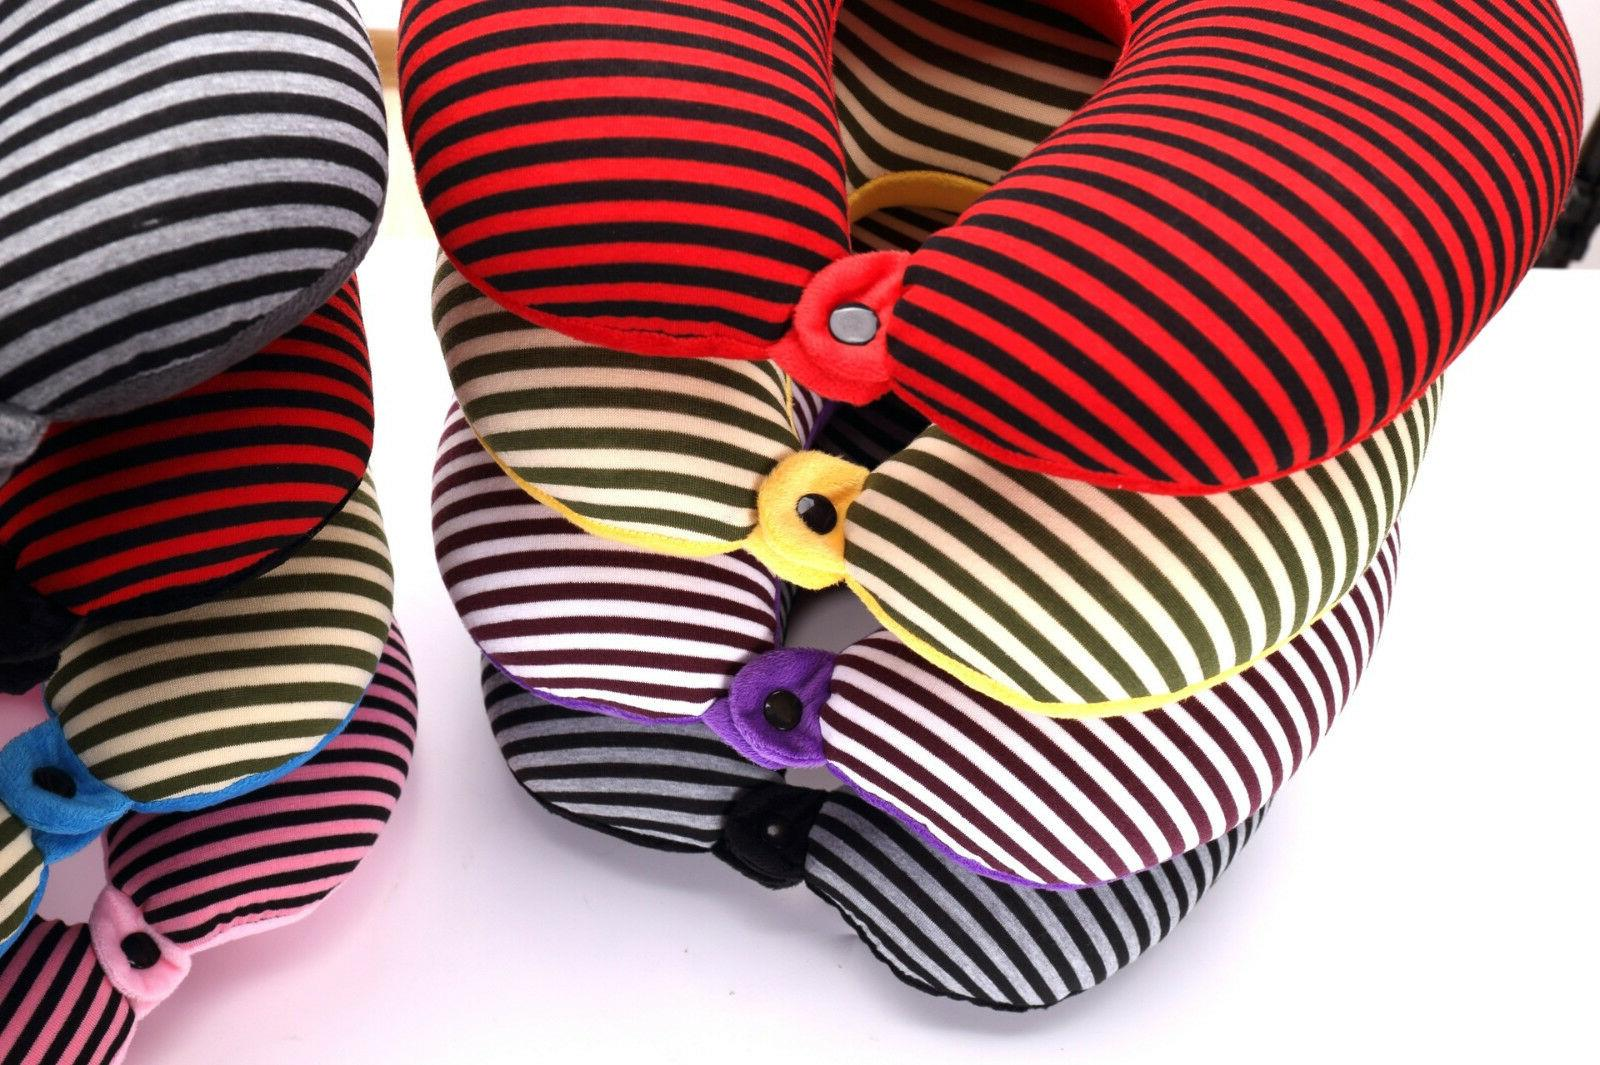 Neck Pillow Ultralight Micro Beads Travel cushion With New Shaped